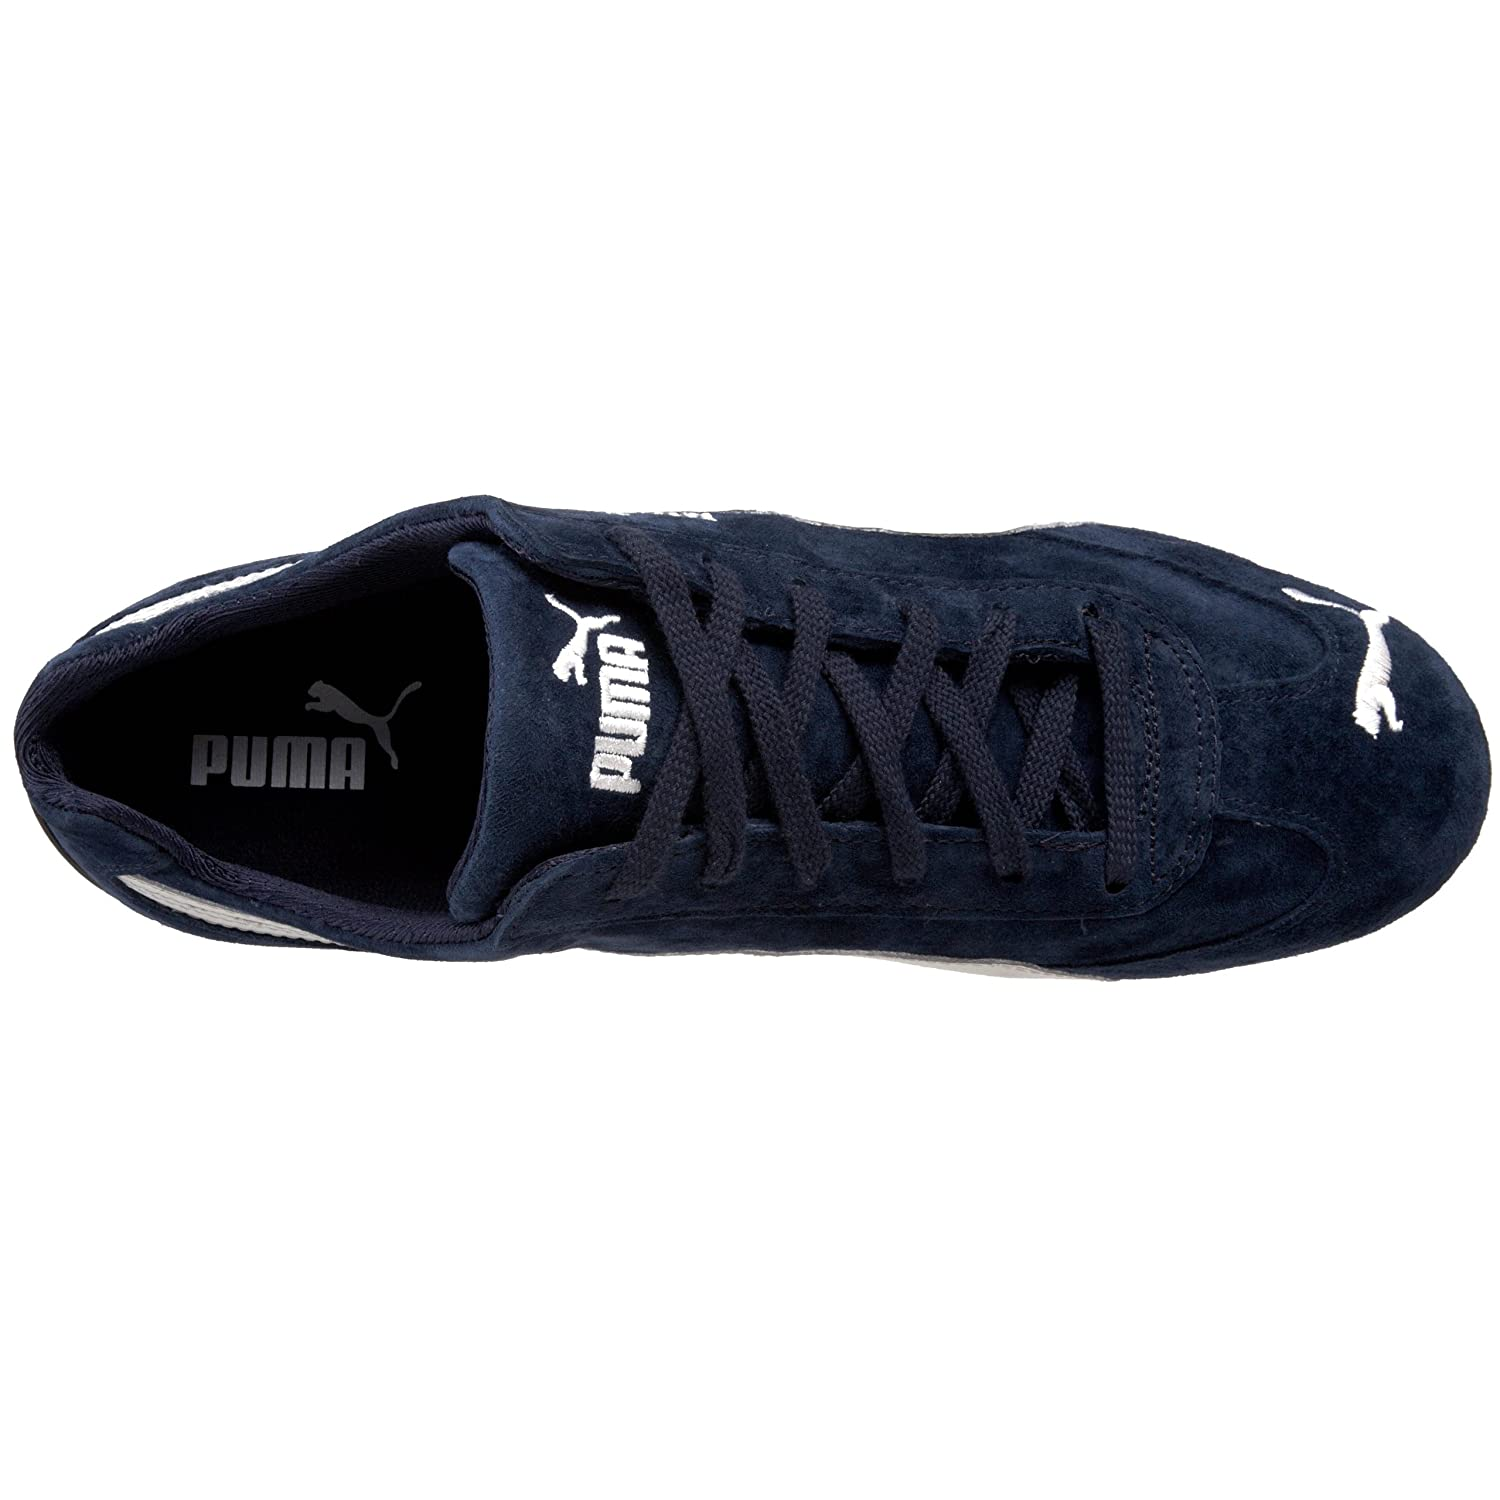 new product 7efb1 86f8d Amazon.com   PUMA Men s Speed Cat SD Sneaker, Insignia Blue Natural, 14  D(M) US   Fashion Sneakers